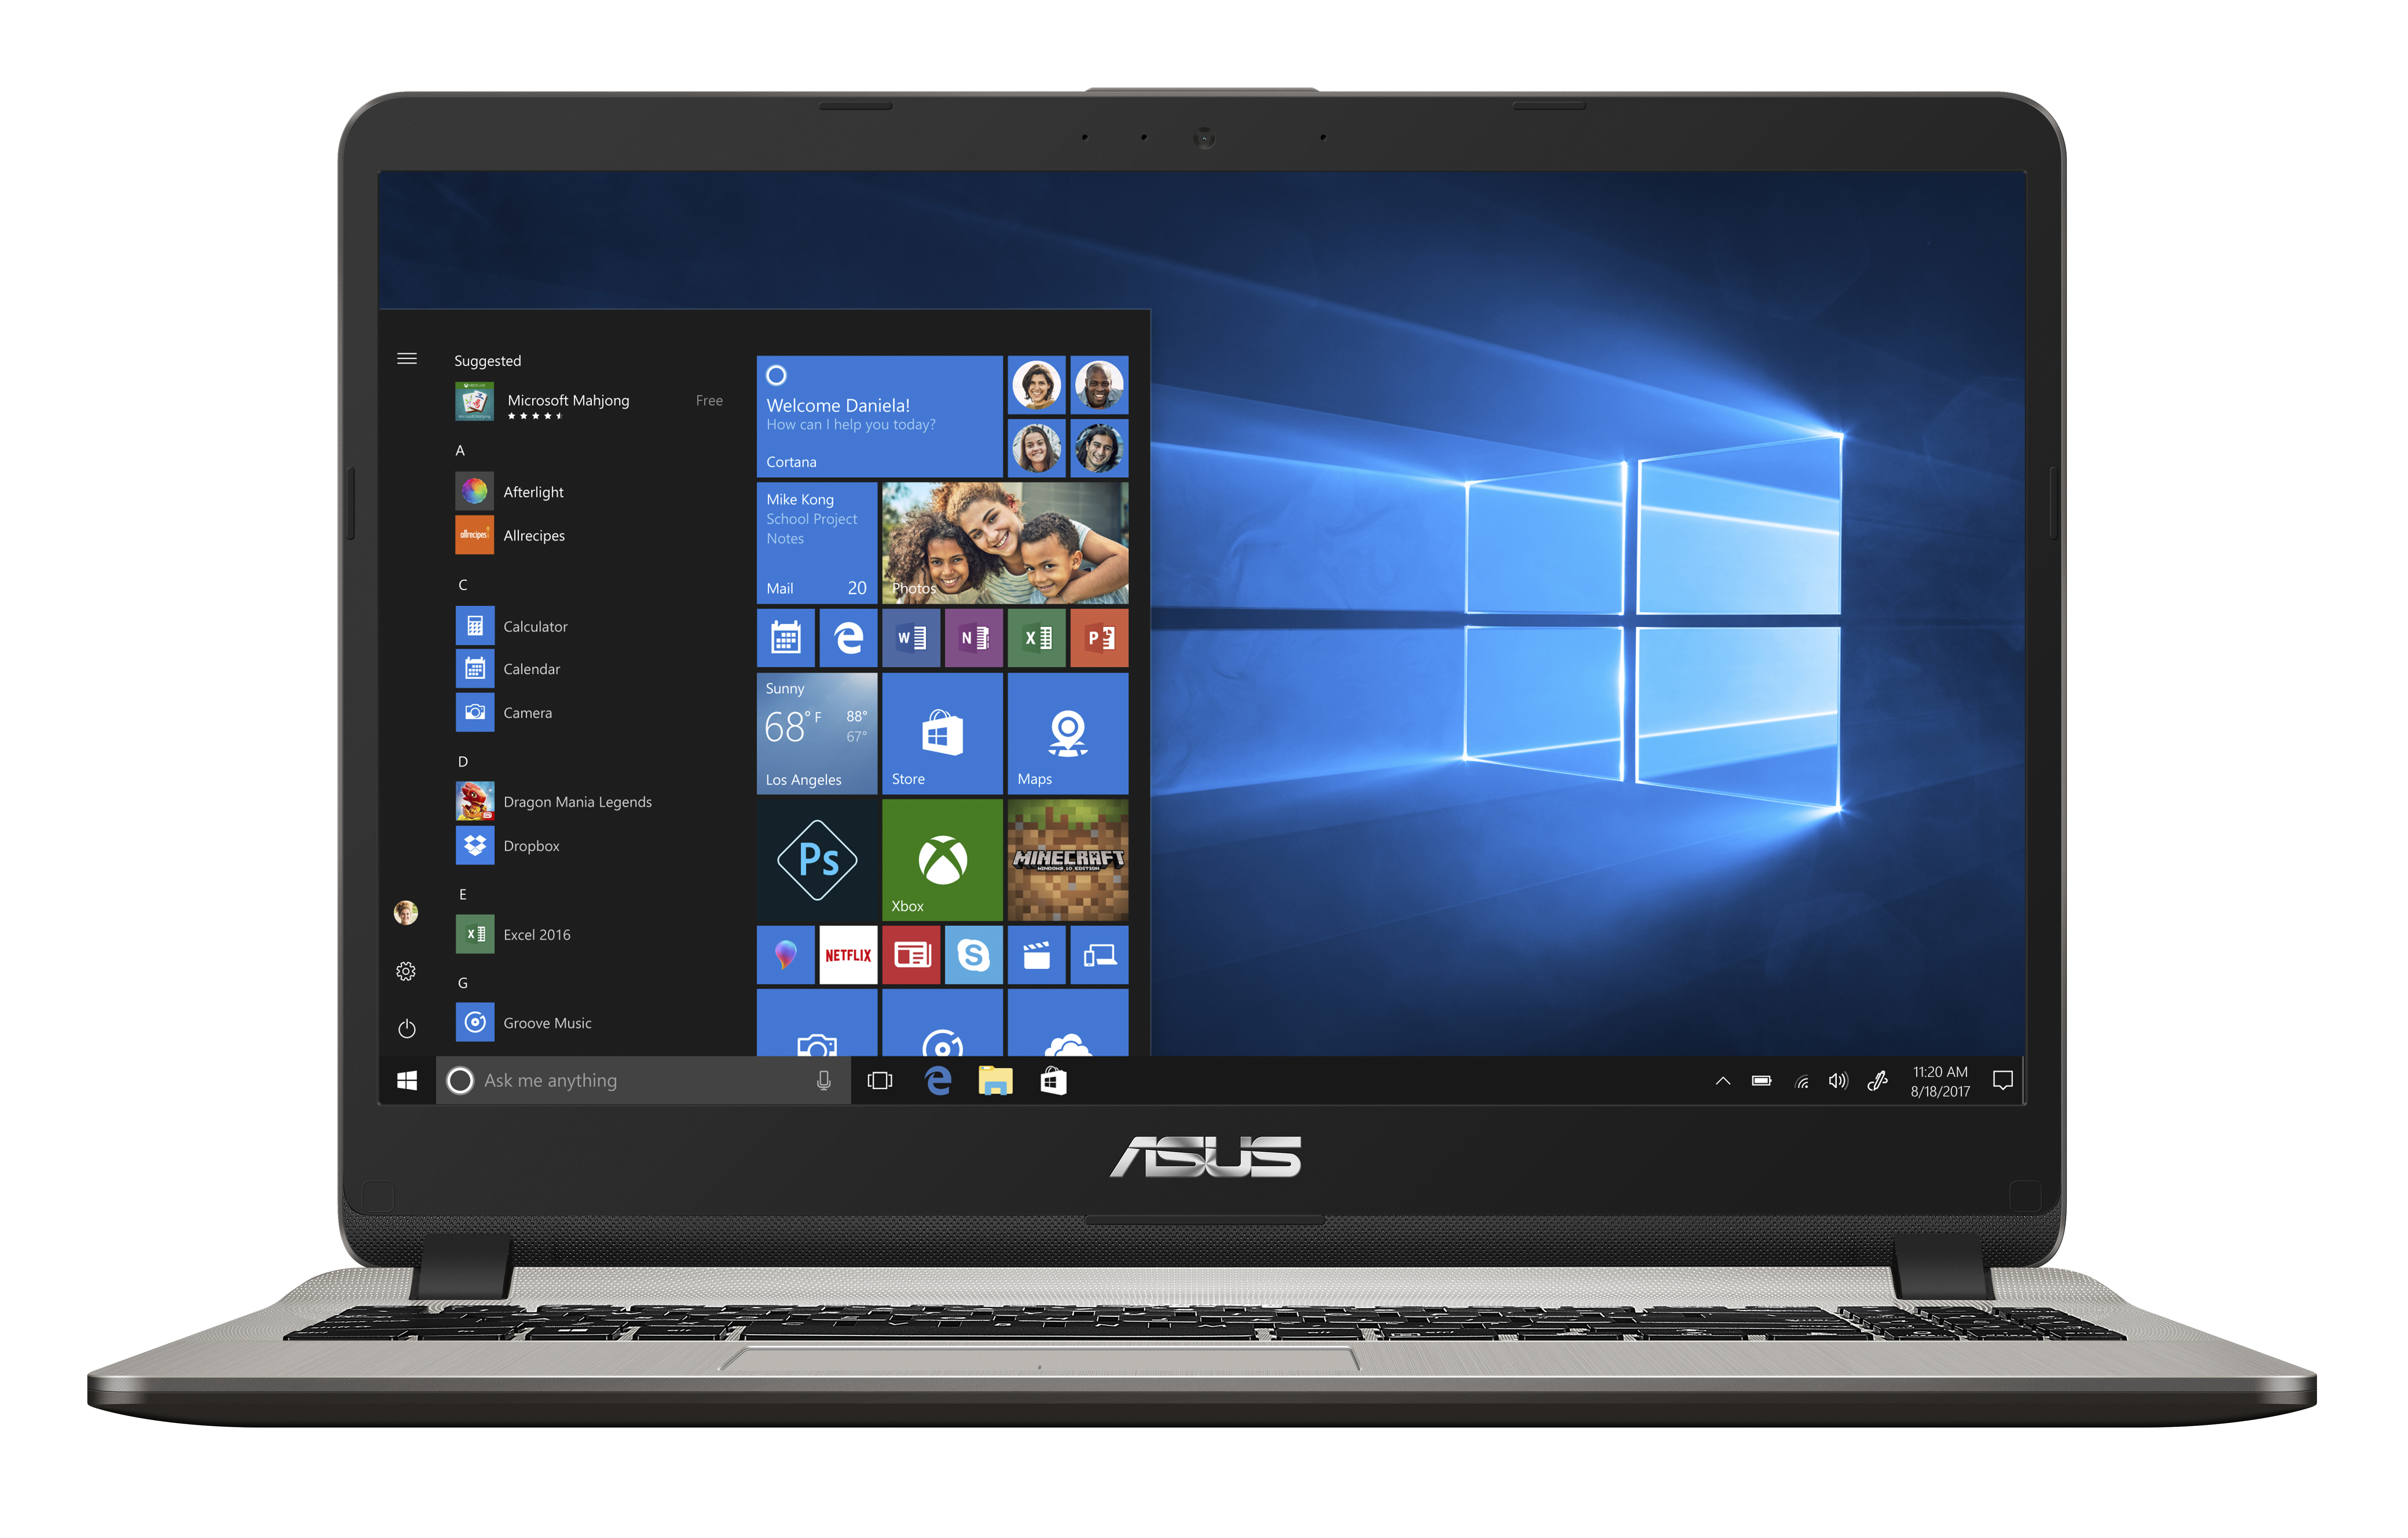 Asus - F507ma-br009t